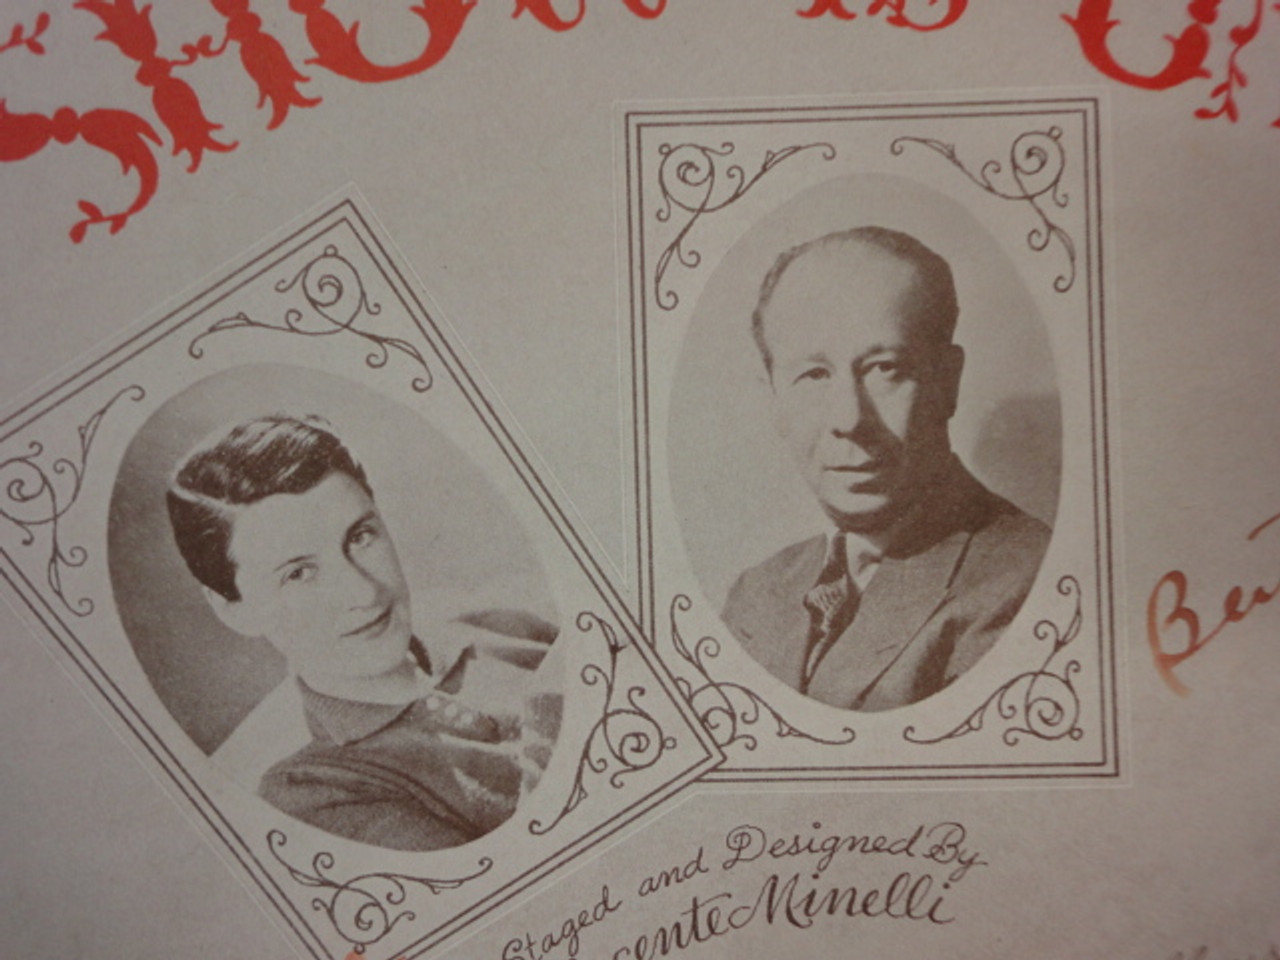 """Lahr, Bert and Beatrice Lillie """"Little Old Lady"""" 1936 Sheet Music Signed Autograph """"The Show Is On"""" Cover Photo"""